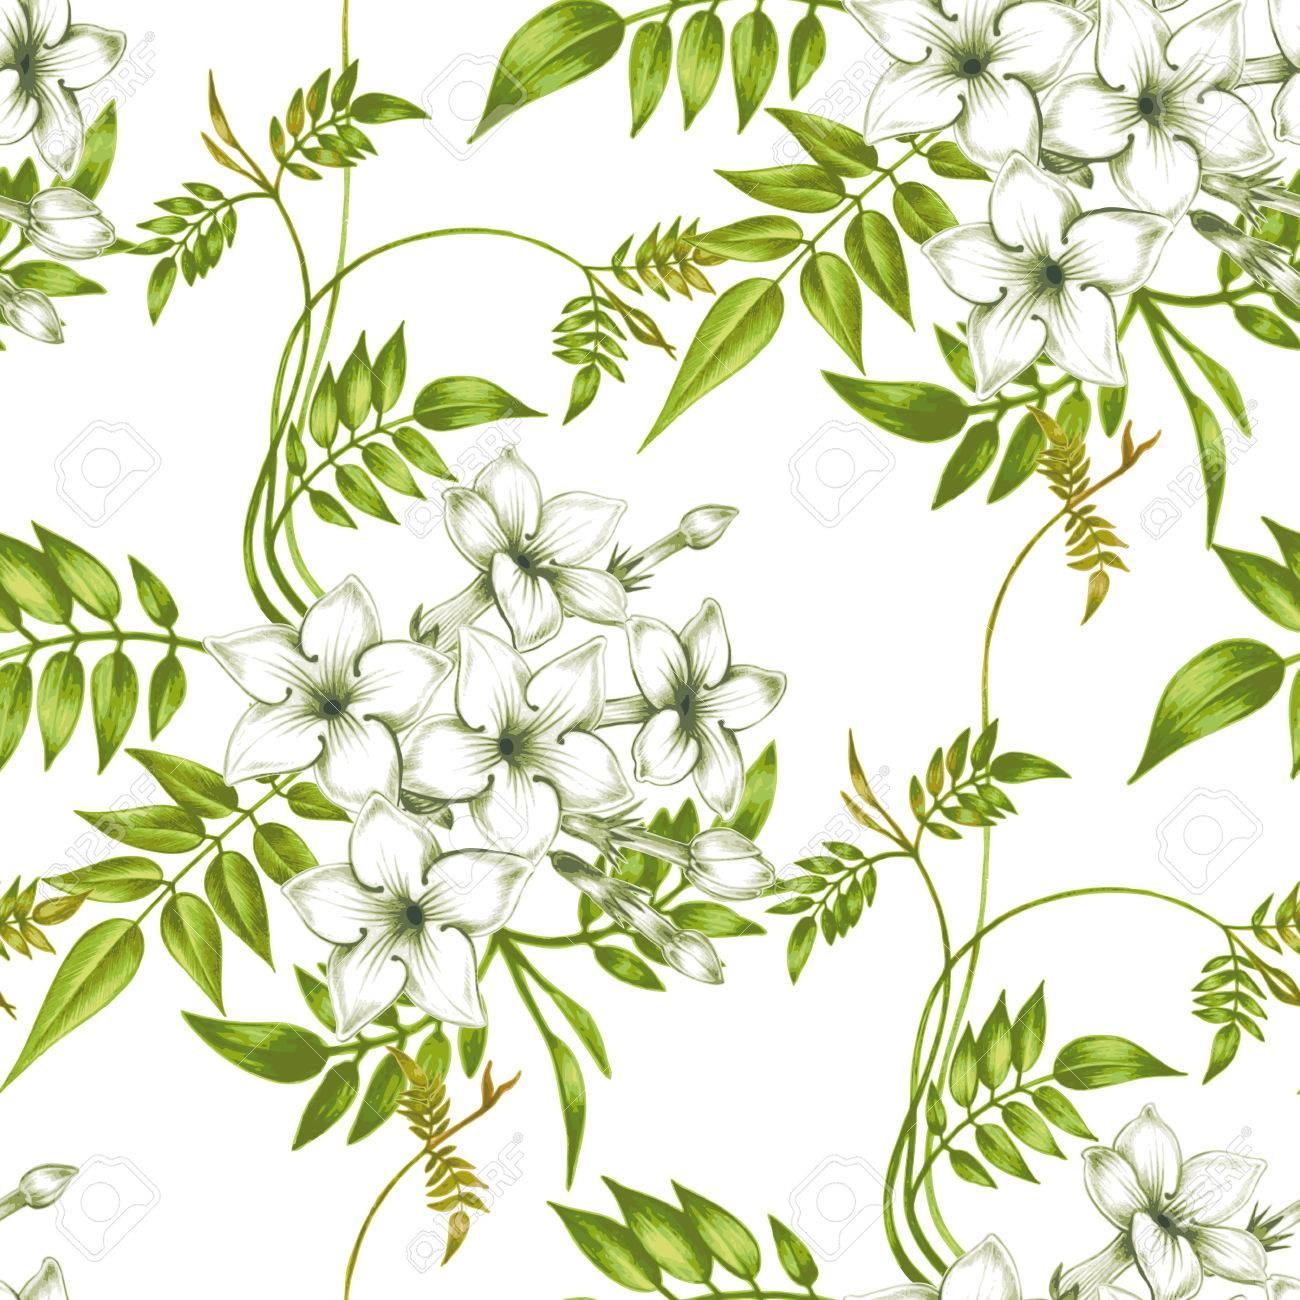 Vector Seamless Background Jasmine Flowerssign For Fabrics